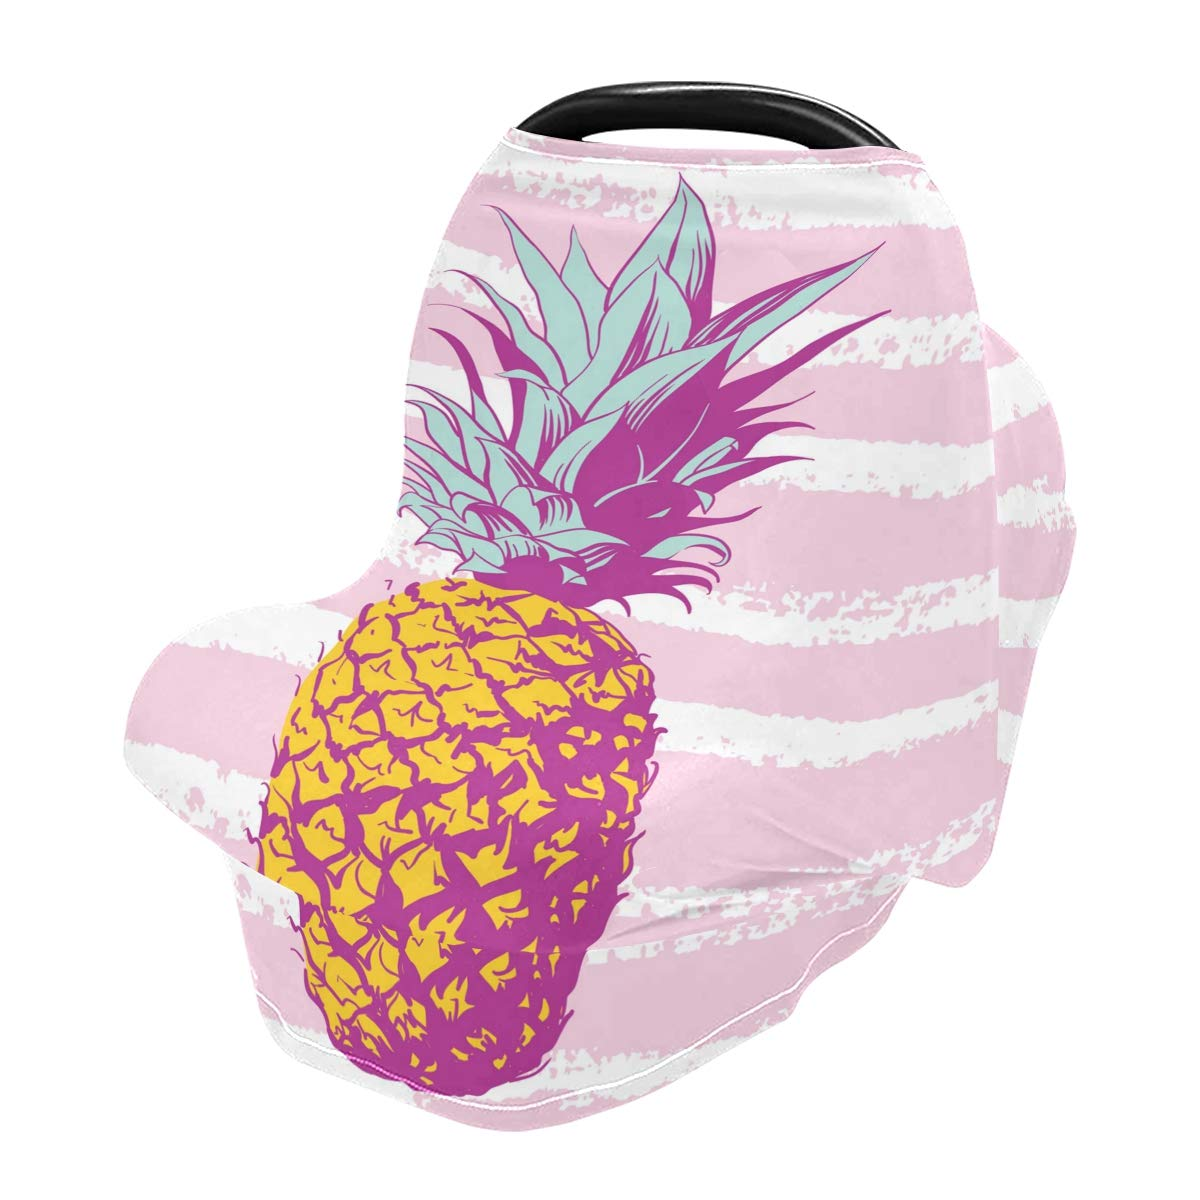 Nursing Cover Stripe Pineapple Breastfeeding Soft Carseat Canopy Multi Use for Baby Car Seat Covers Canopy Shopping Cart Cover Scarf Light Blanket Stroller Cover